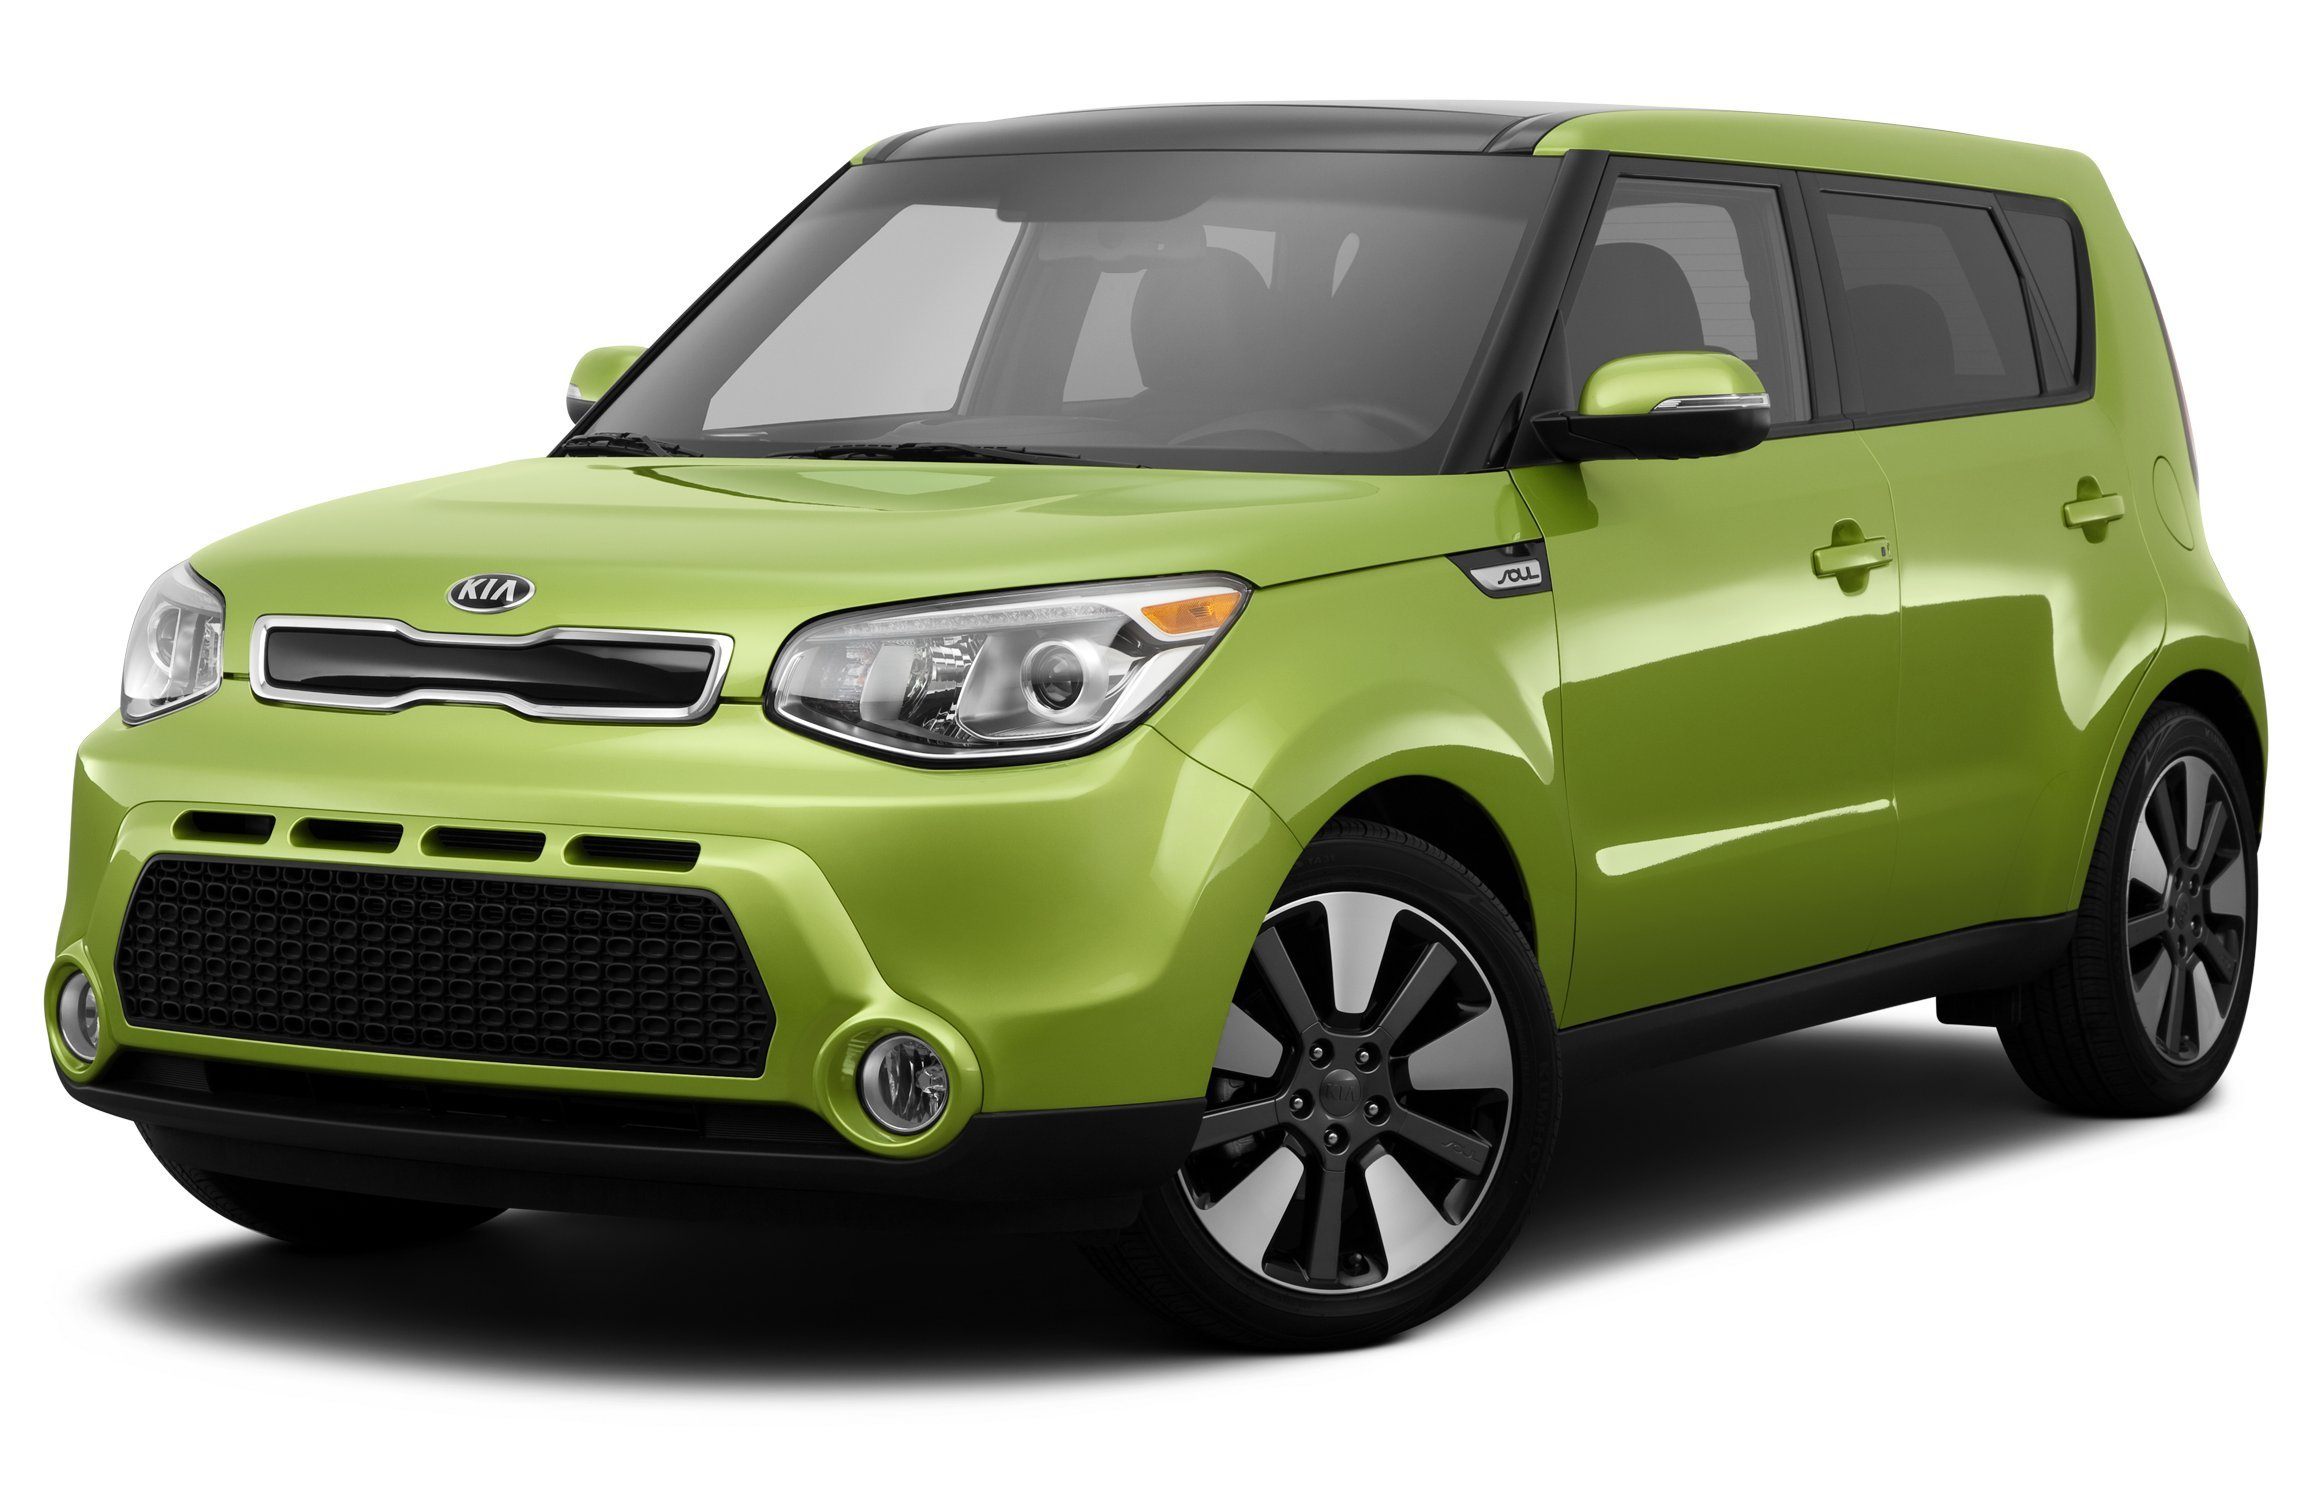 2015 kia soul reviews images and specs vehicles. Black Bedroom Furniture Sets. Home Design Ideas